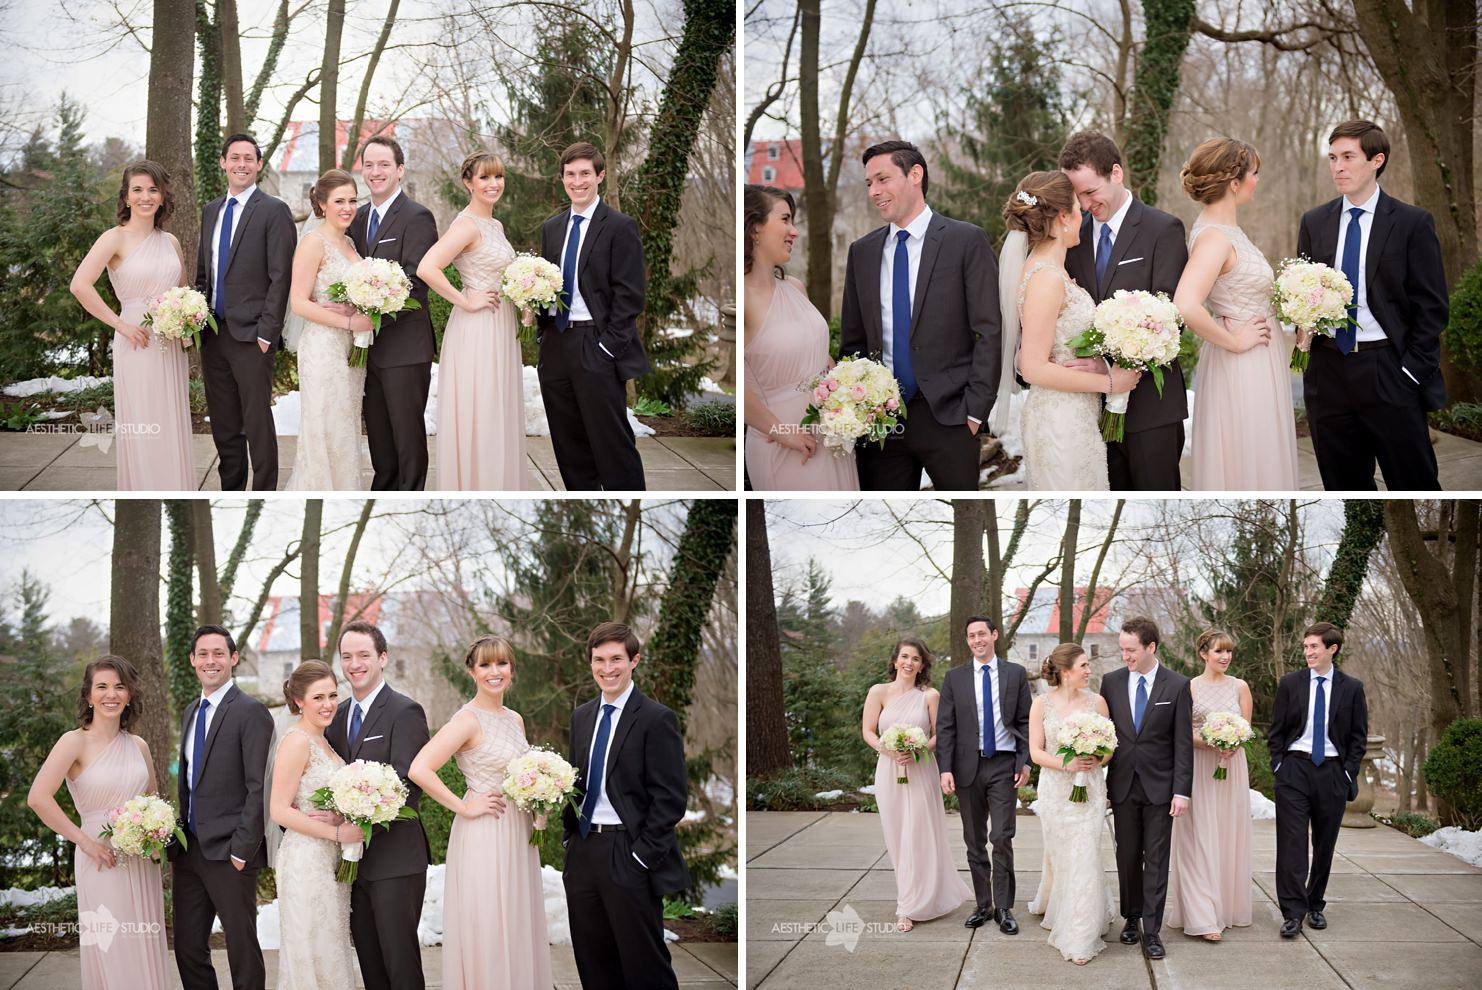 ceresville mansion wedding 021.jpg